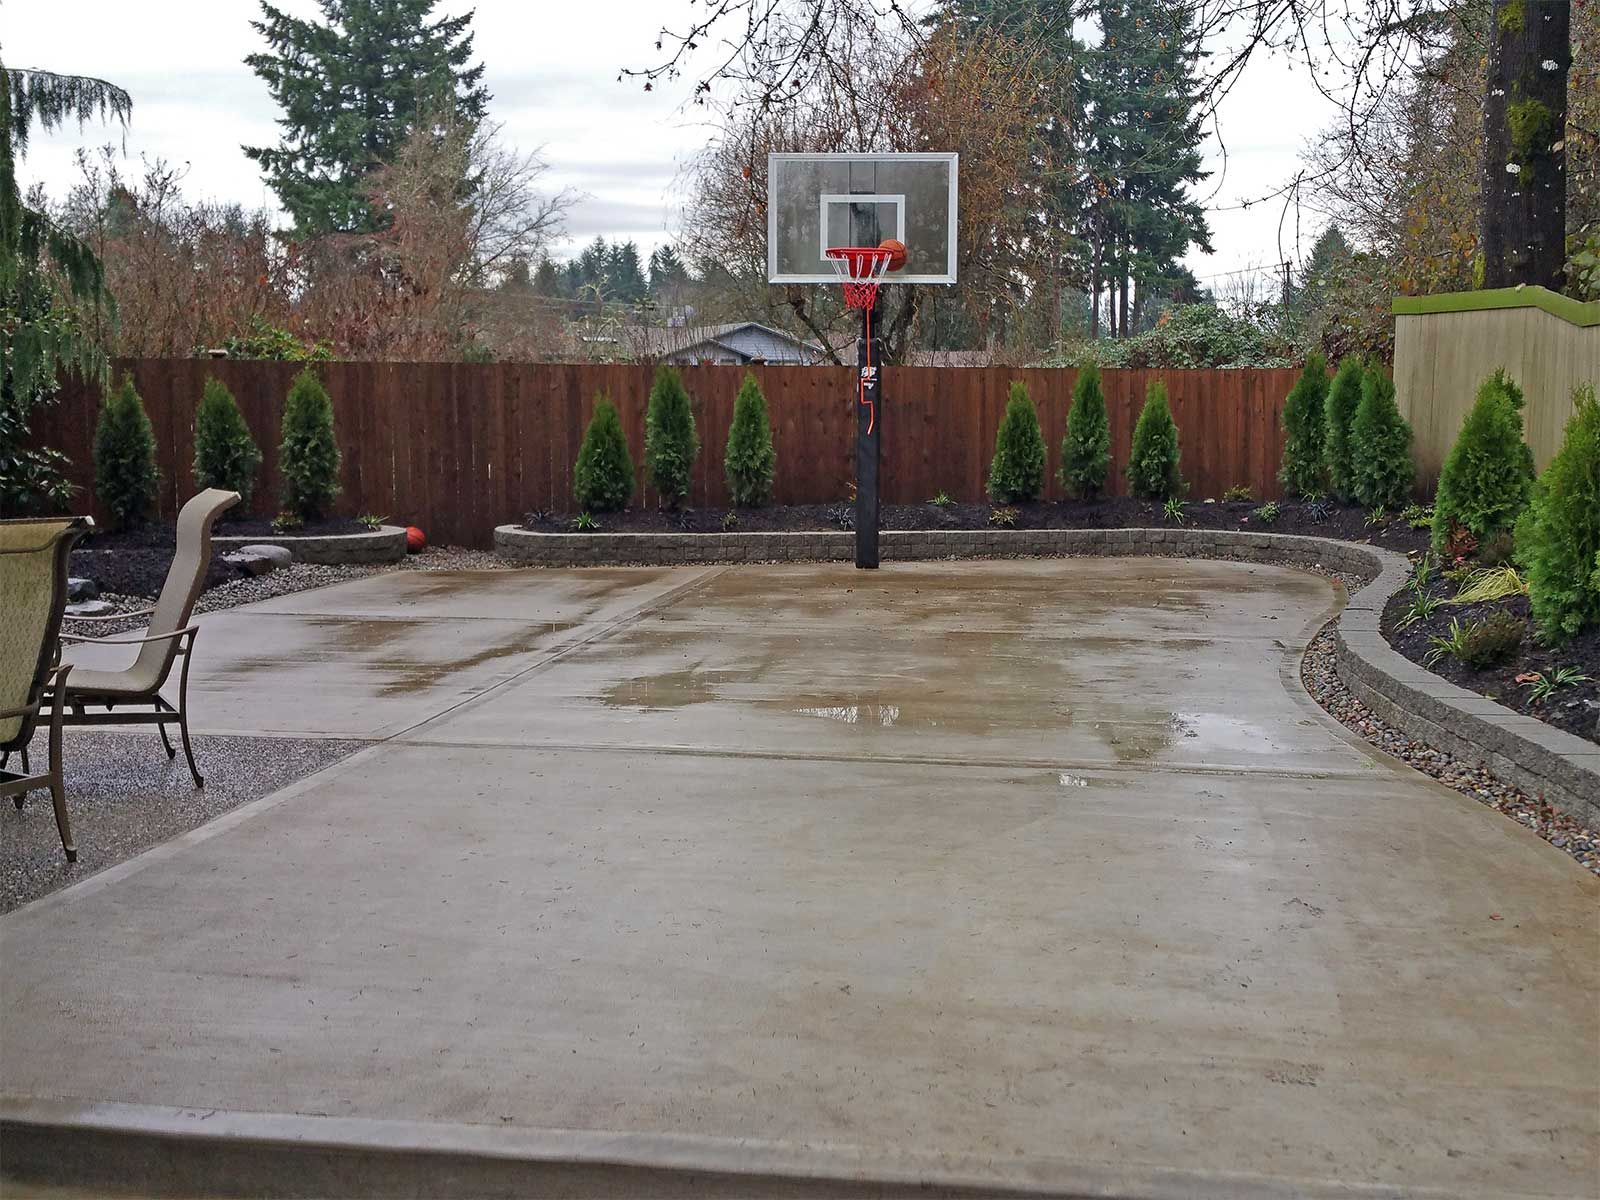 The Concrete Slab Basketball Court Is Great Exercise For The Whole throughout Cement Ideas For Backyard